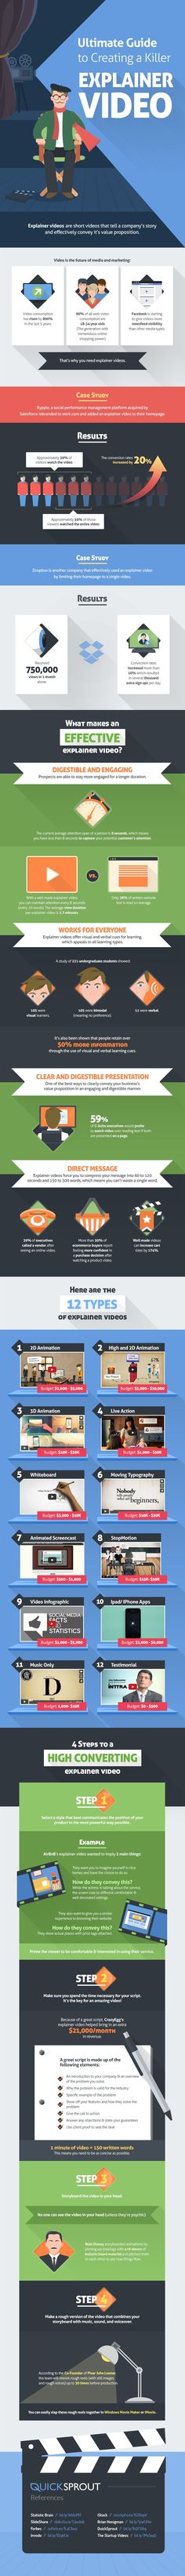 How to Create a Killer Explainer Video [Infographic], via @HubSpot